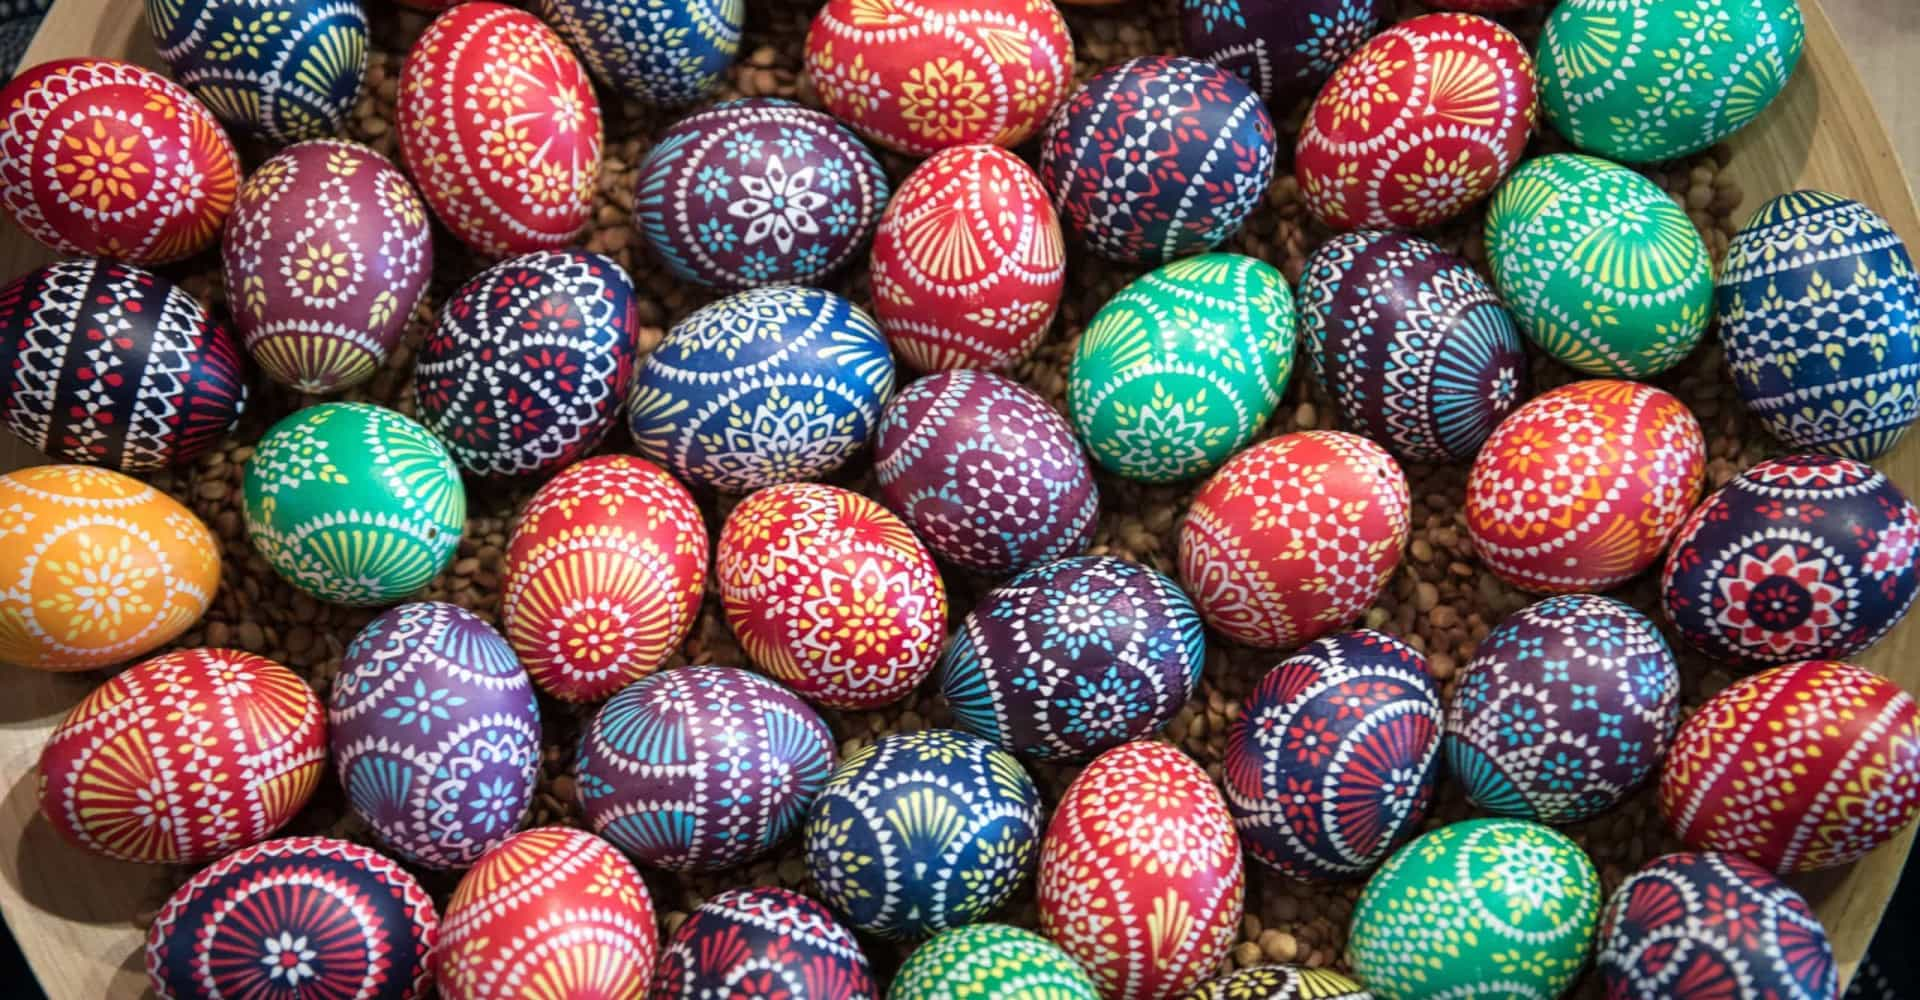 Exquisite Easter eggs from around the world